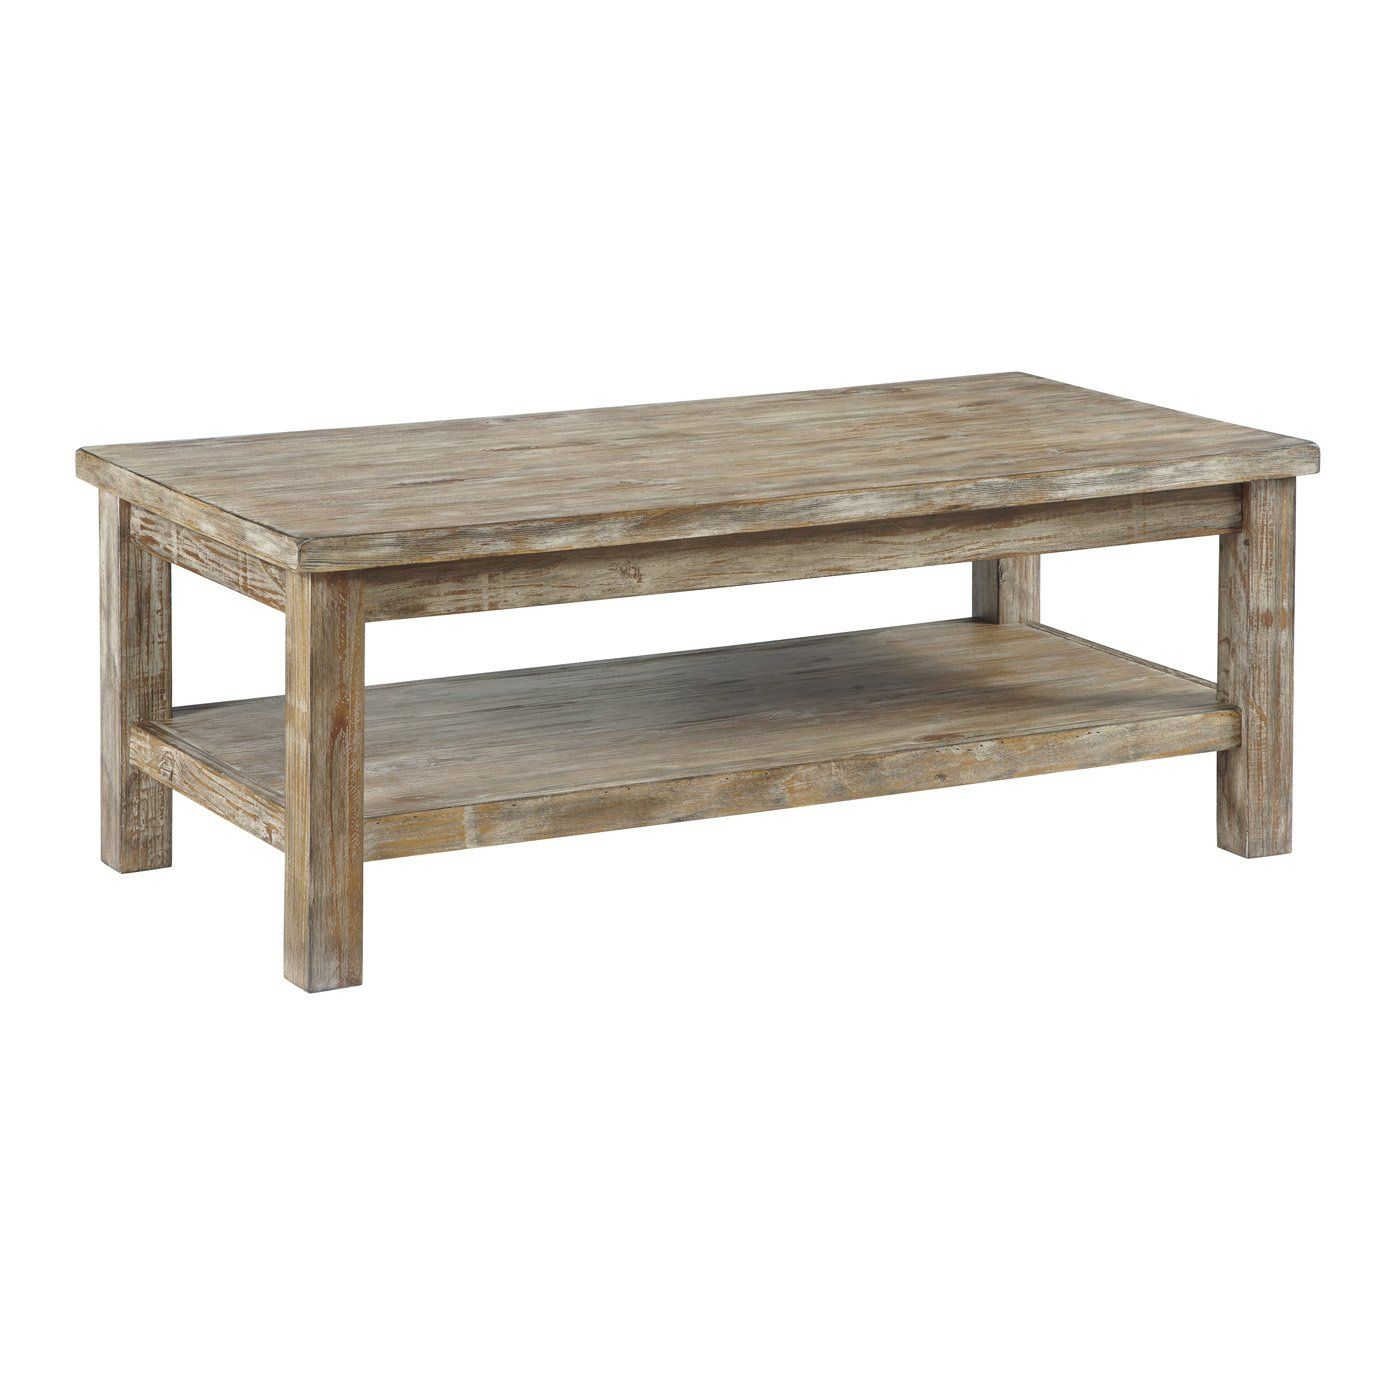 Distressed Wood Coffee Table Modern Living Room Furniture Sets